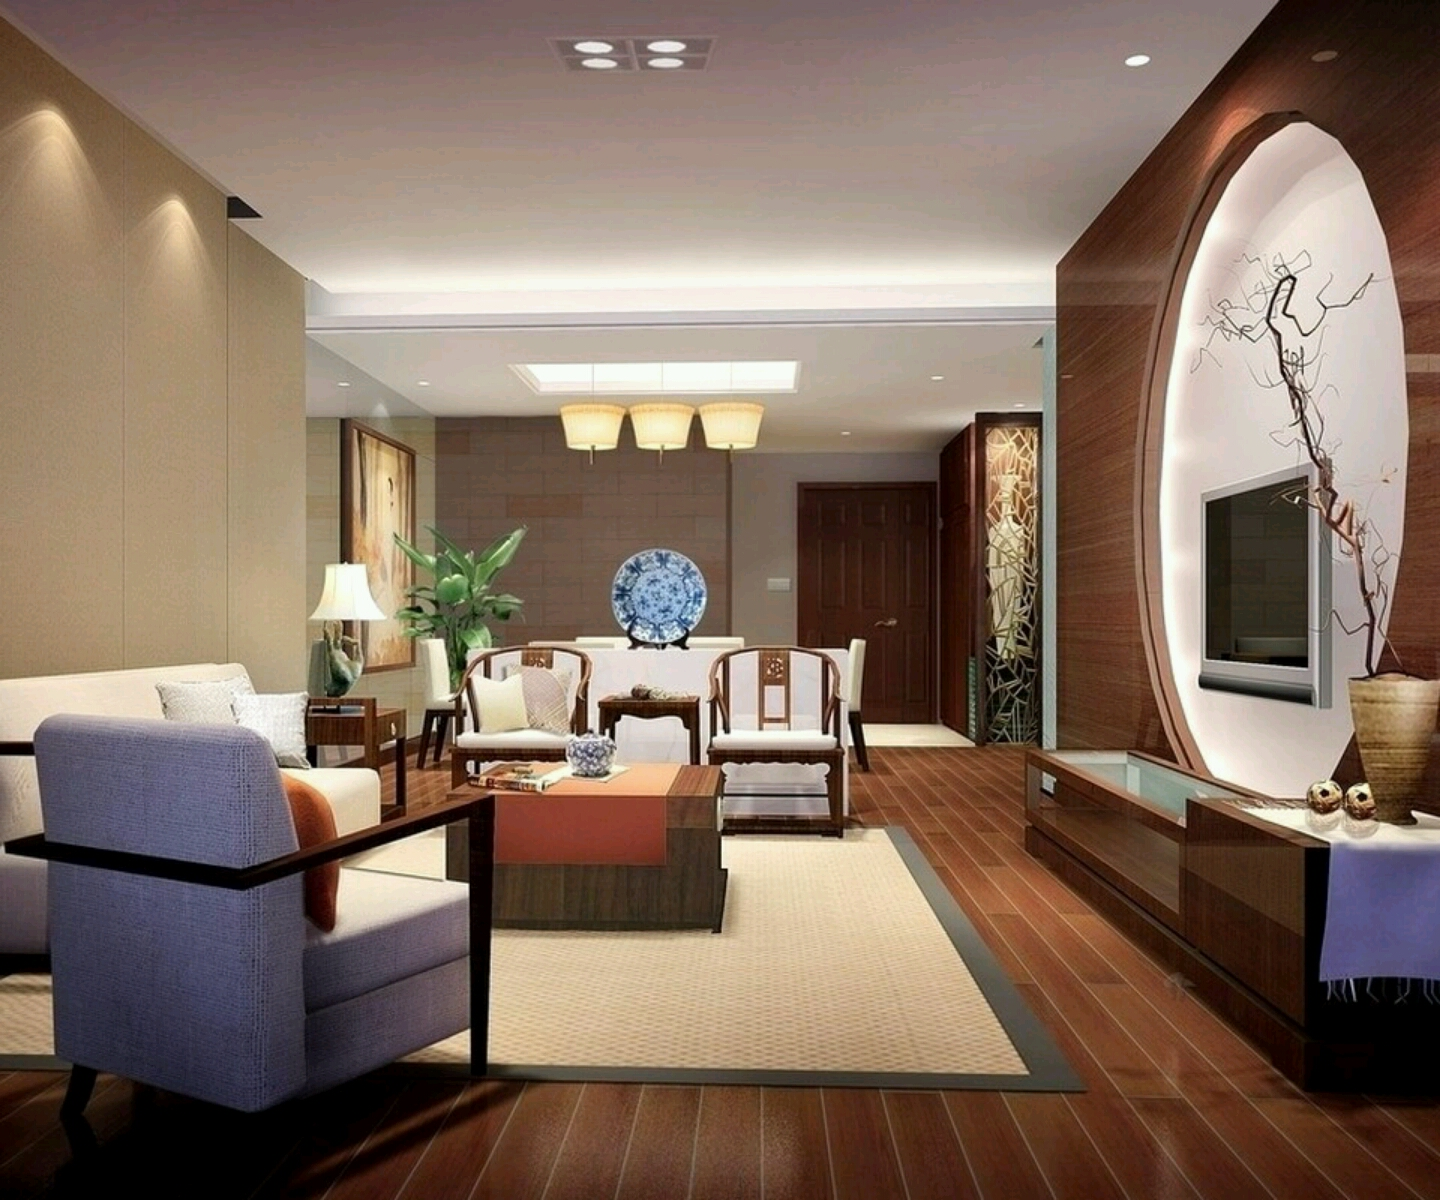 Home Design Ideas: Luxury Homes Interior Decoration Living Room Designs Ideas